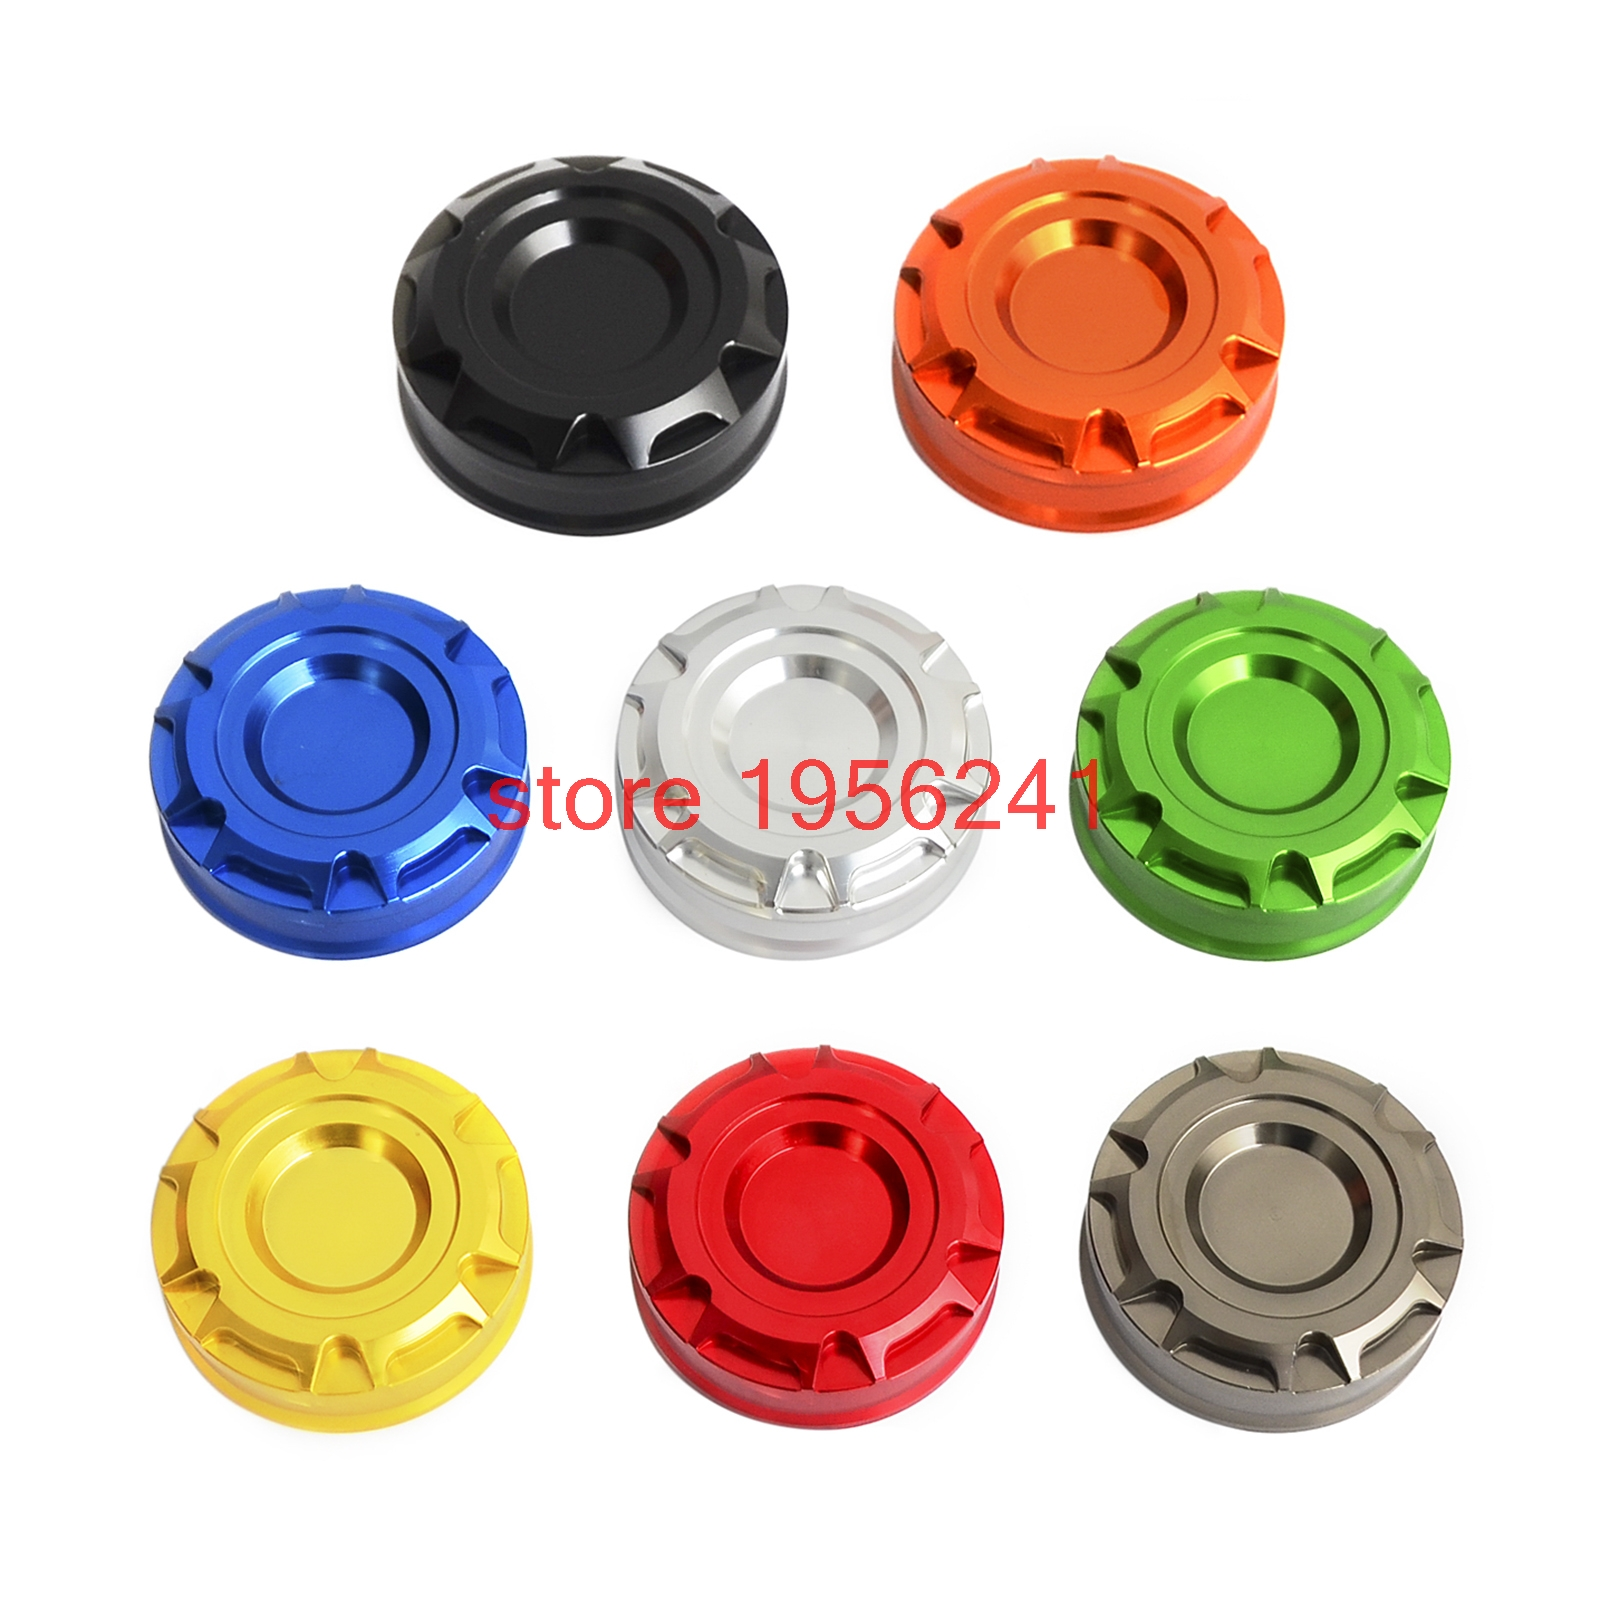 Motorcycle Accessories Rear Brake Reservoir Cover Oil Cap For Triumph Street Triple R 09-12 Also Fit BMW S1000RR 10-14 S1000 RR for lifan motorcycle lf150 9m new street fighter new rear brake accessories